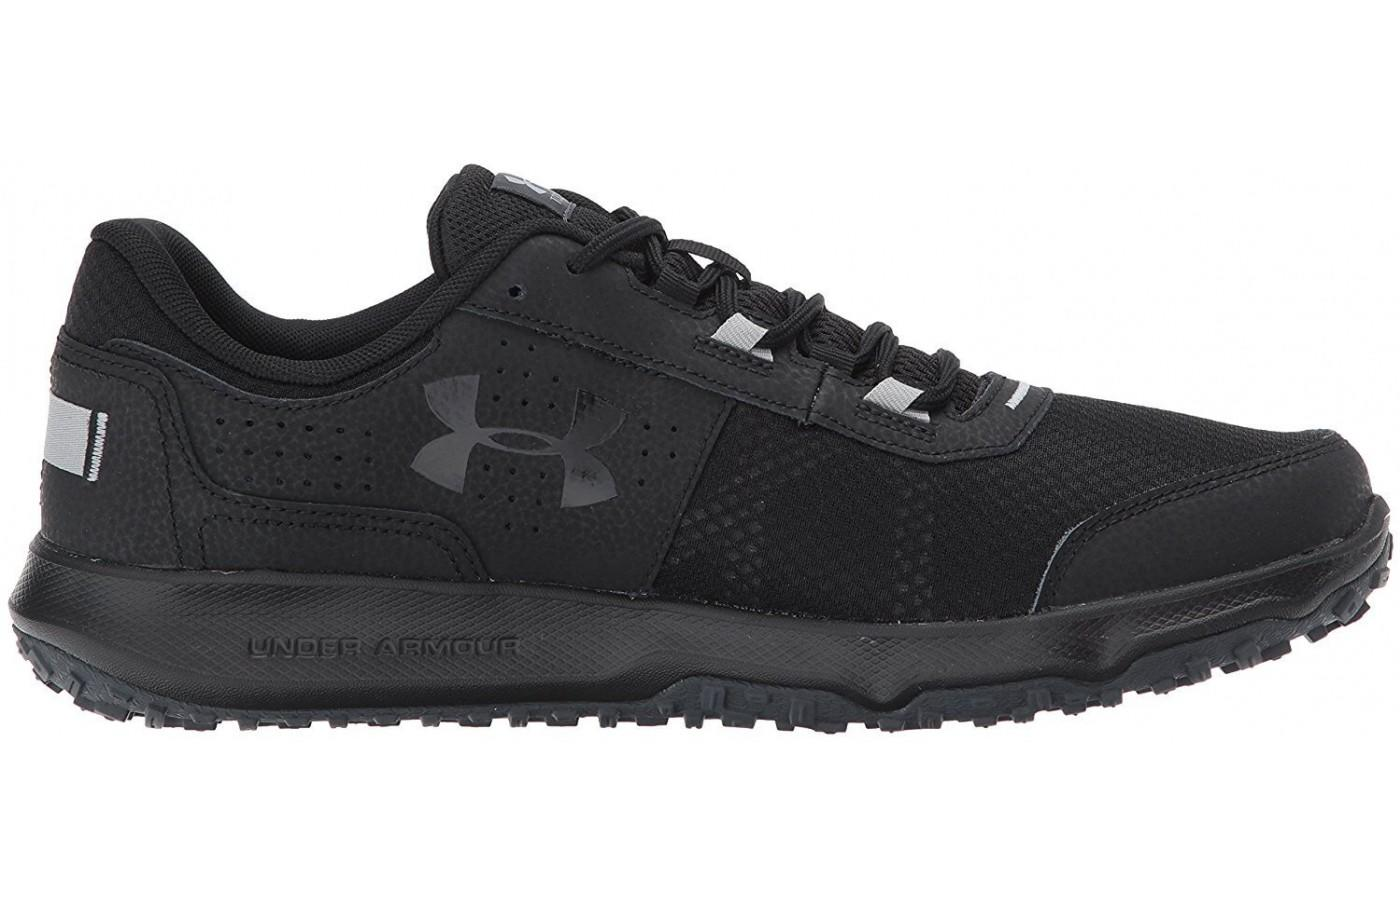 EVA foam in the Under Armour Toccoa's midsole provides dense cushioning.